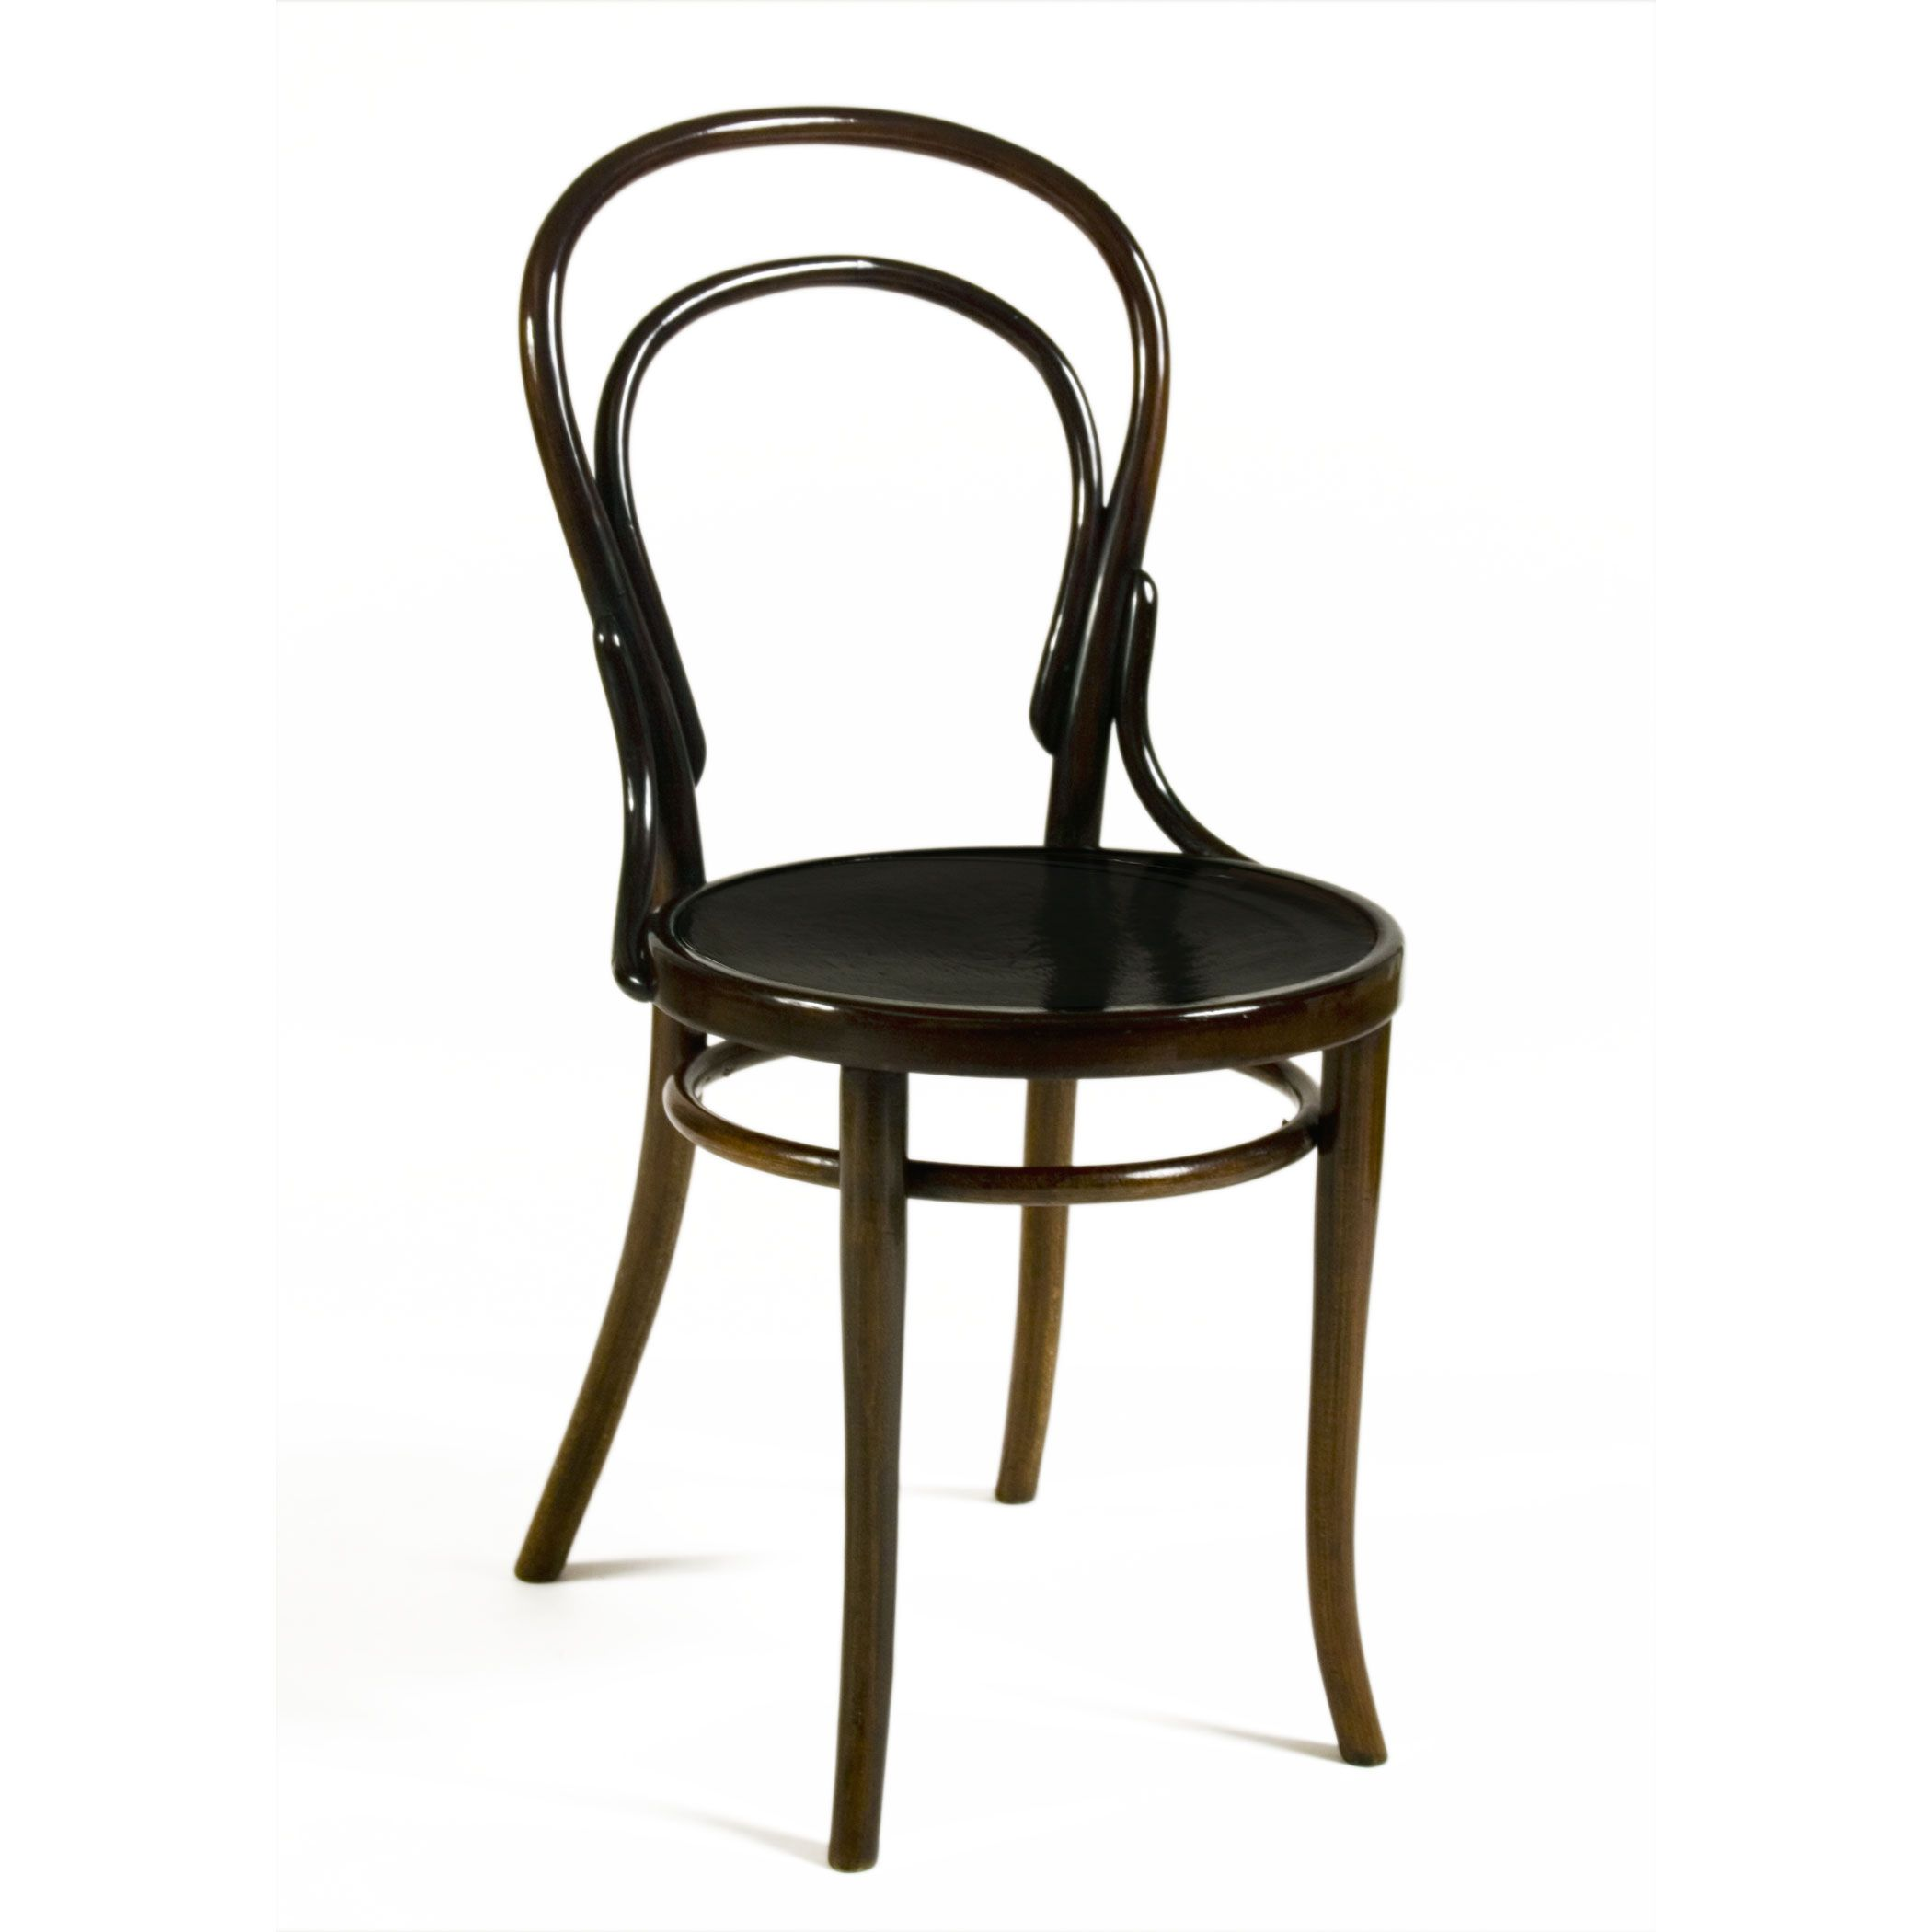 mechael thonet chair model arm chair pinterest. Black Bedroom Furniture Sets. Home Design Ideas